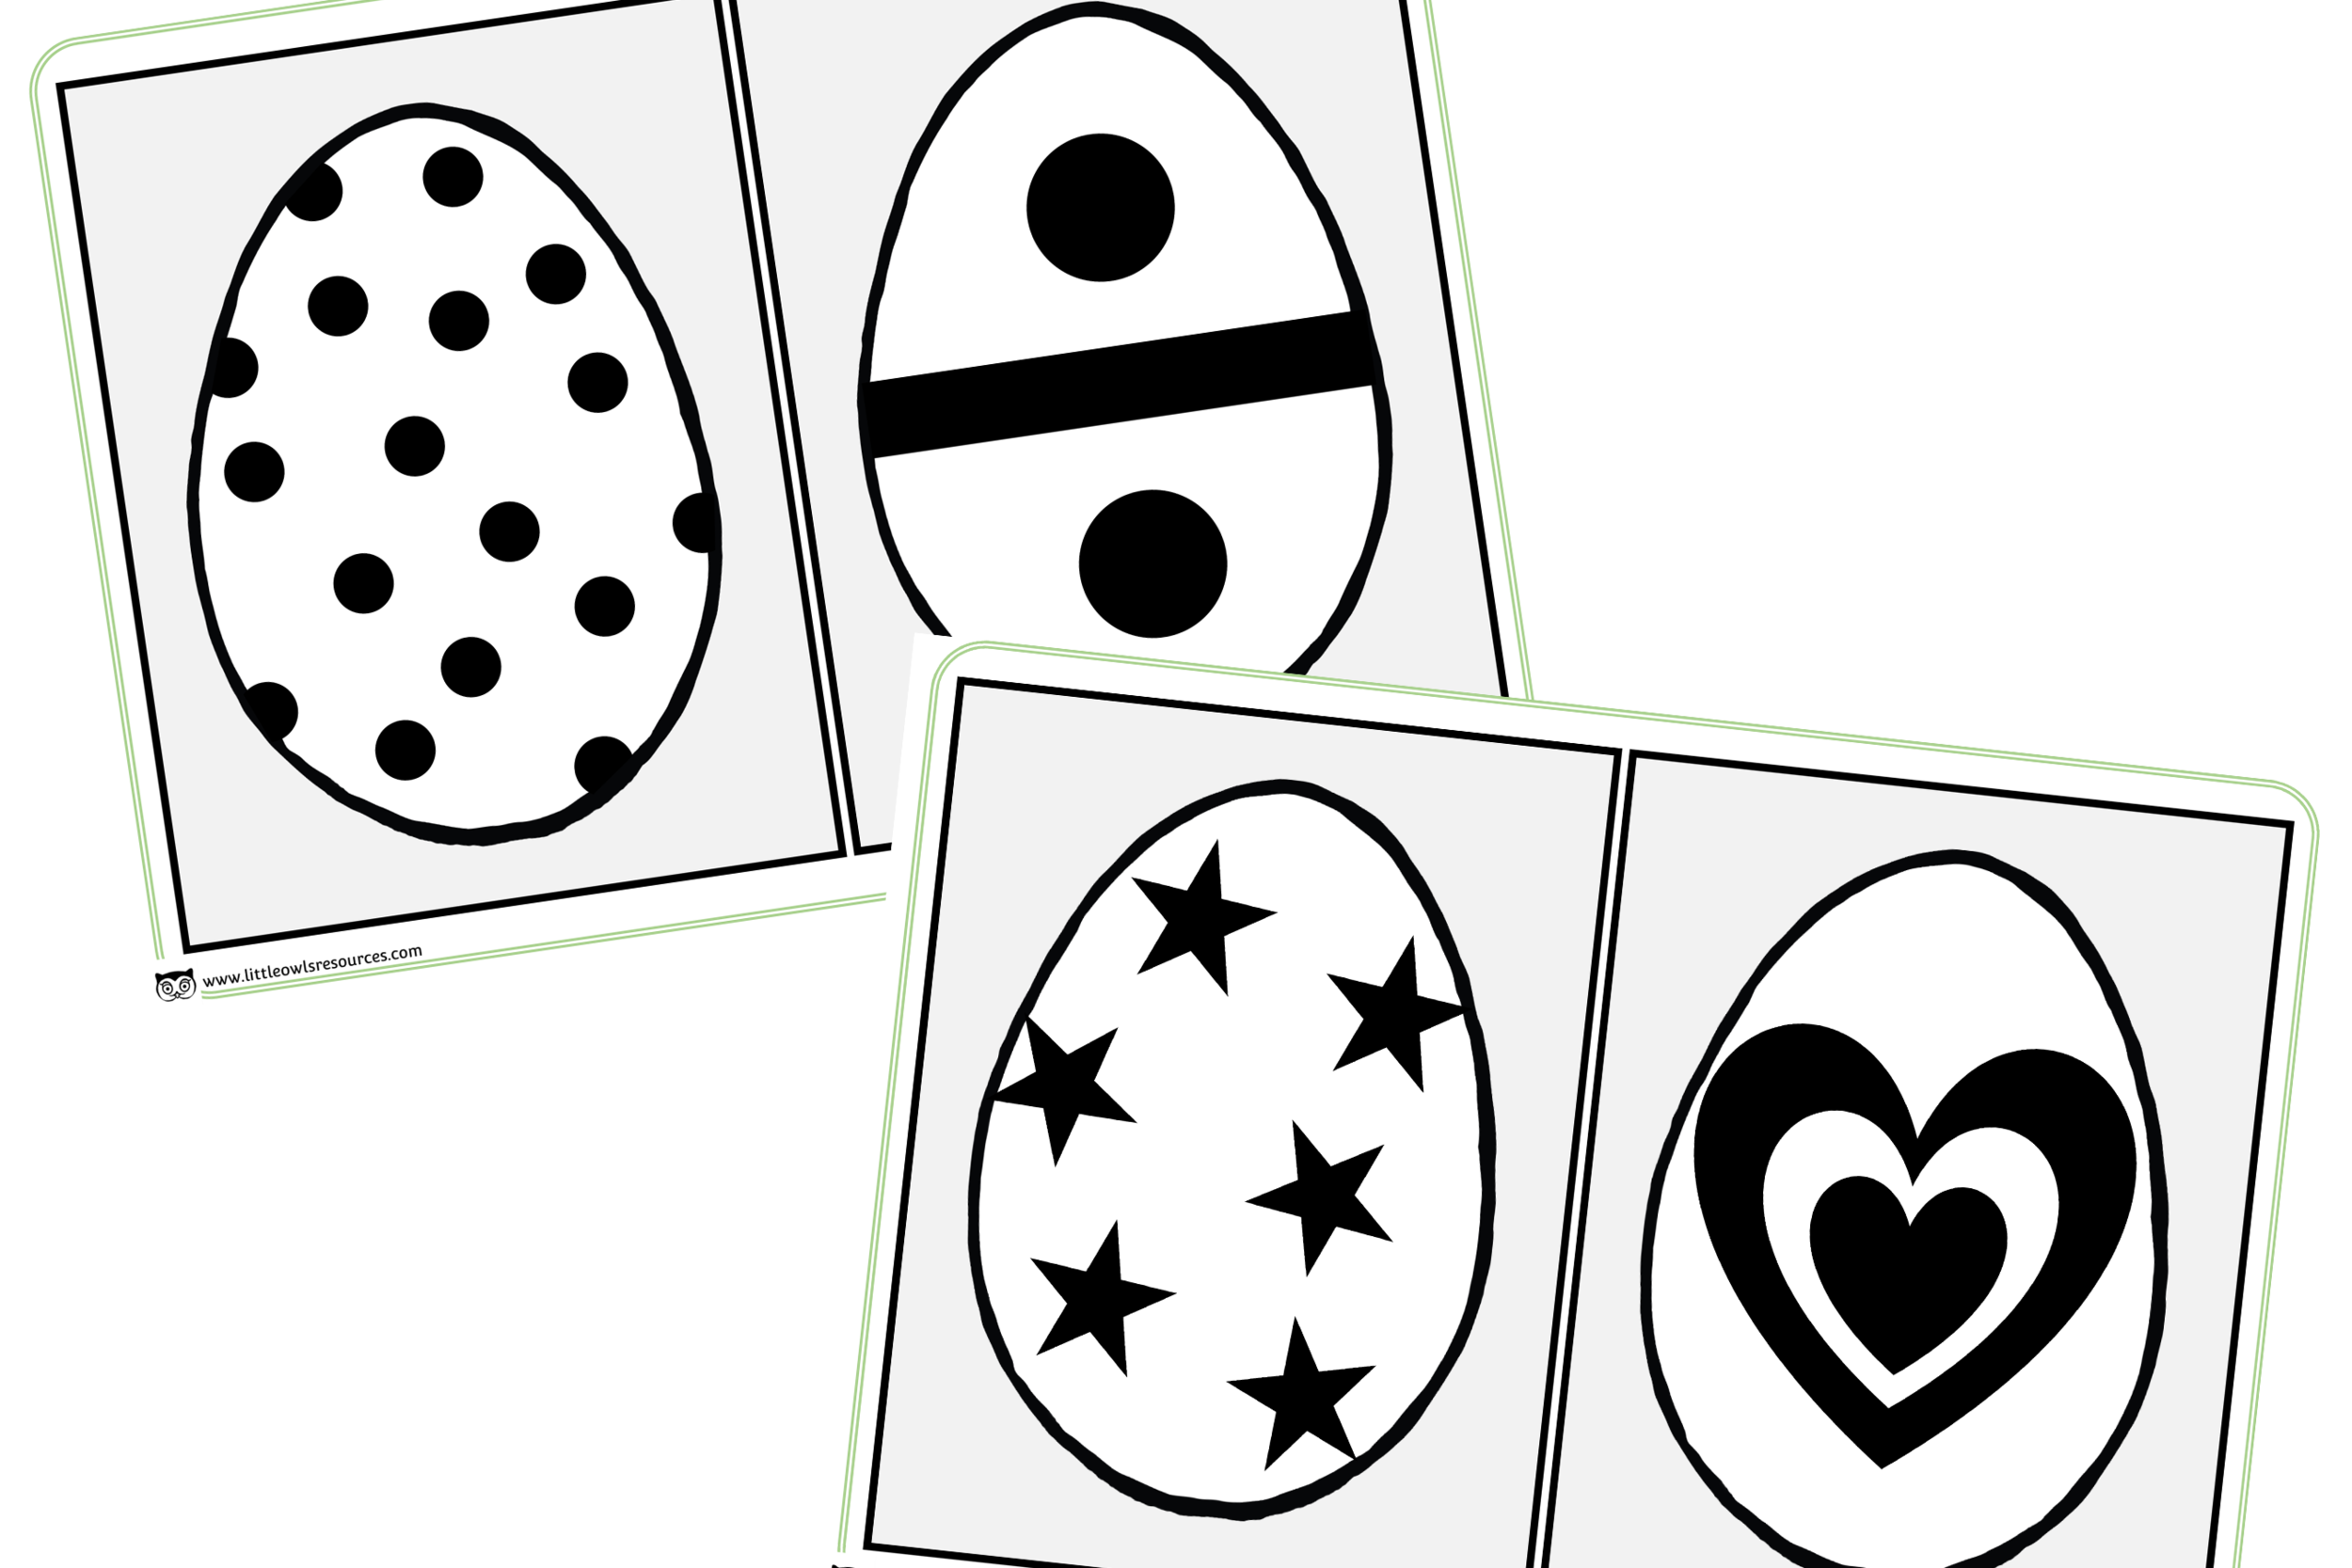 High Contrast Black and White Egg Images for Babies